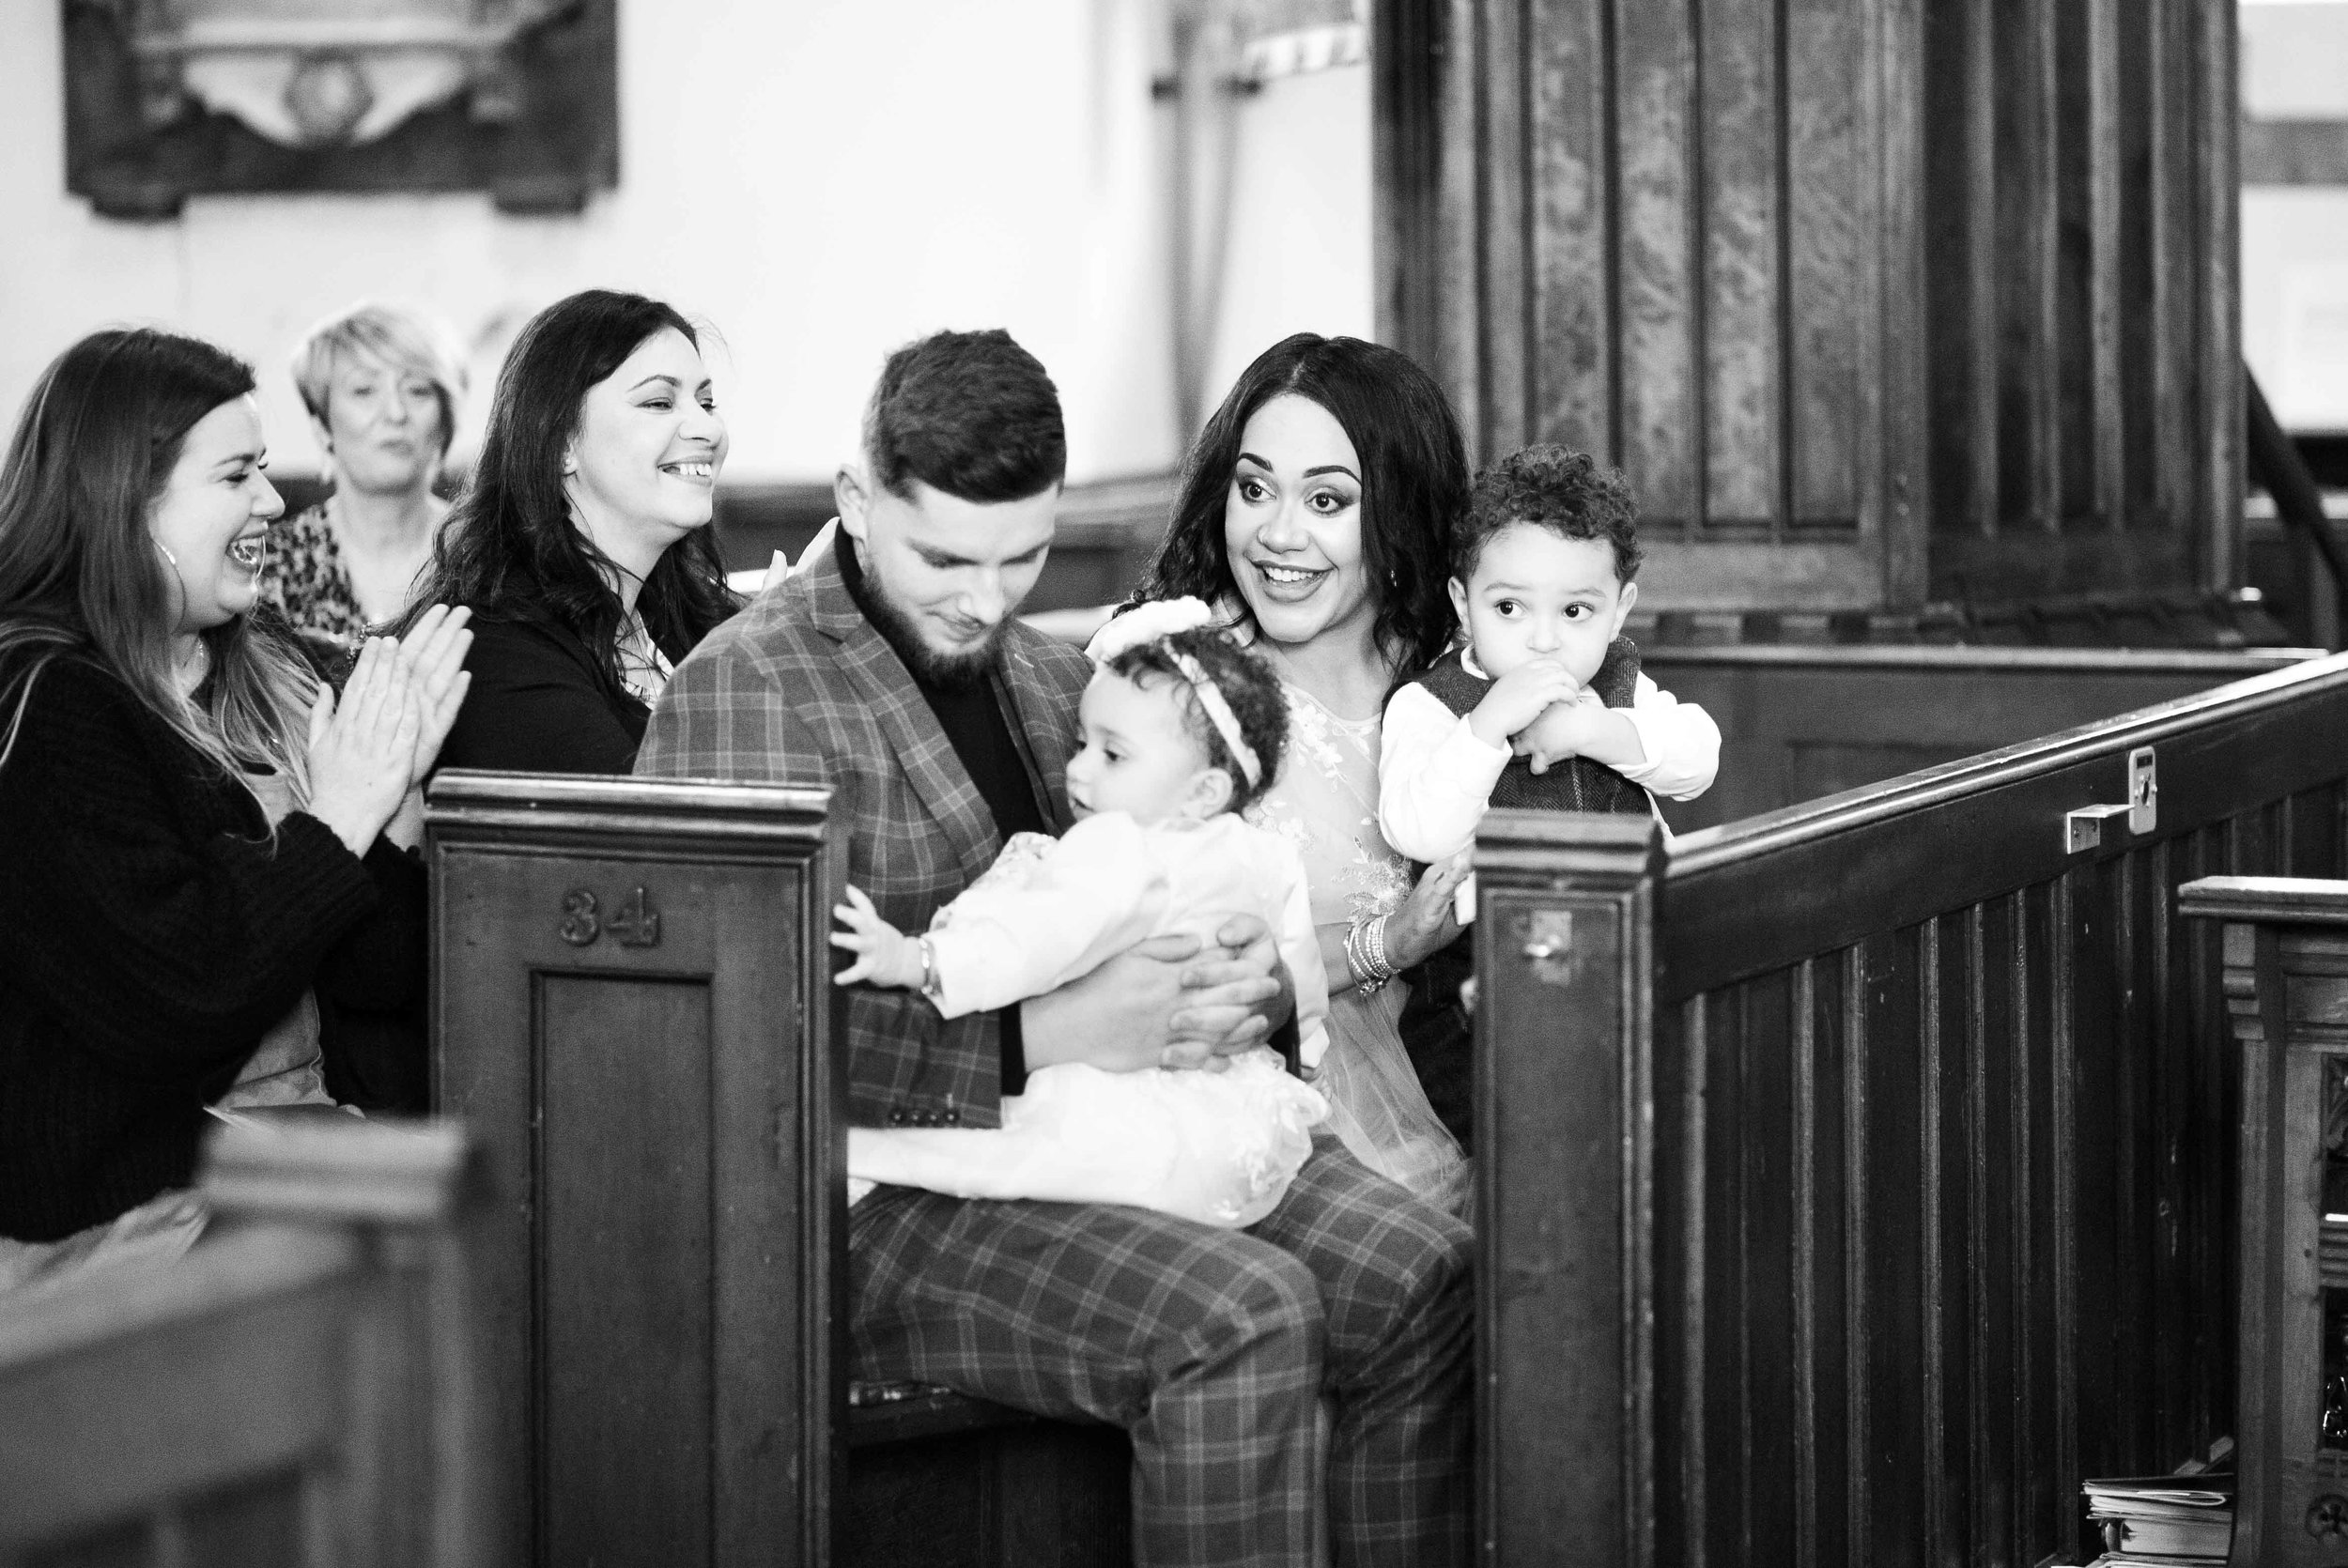 Lea-cooper-photography-christening-photographer-baptism-wolverhampton-wednesbury-walsall-willenhall-dudley-church-chapel-event-photography-7.jpg